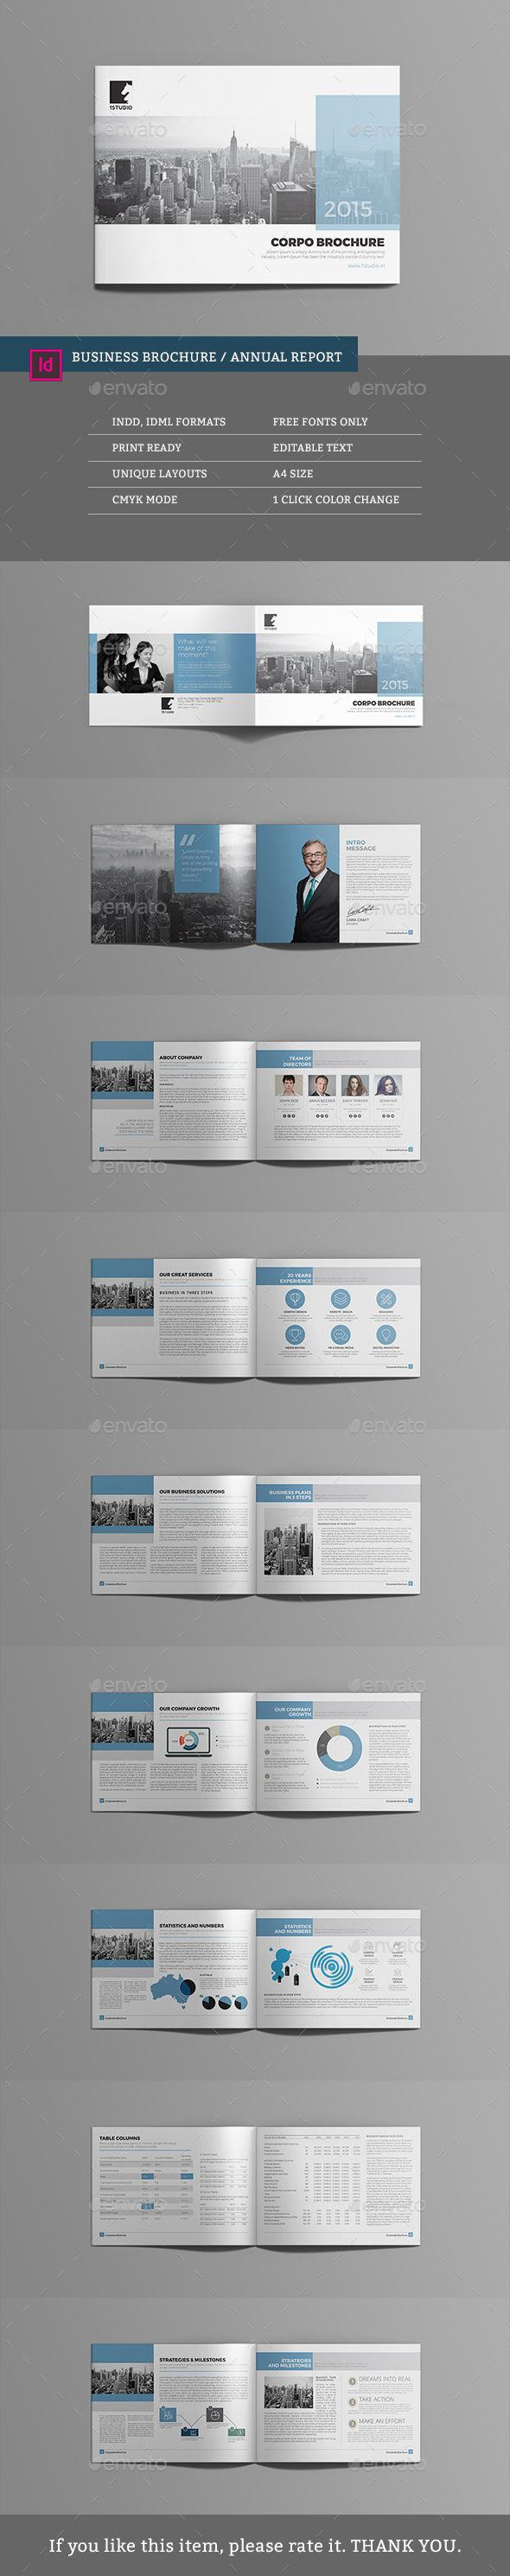 Business Brochure / Annual Report Template InDesign INDD #design Download: http://graphicriver.net/item/business-brochure-annual-report/13695835?ref=ksioks